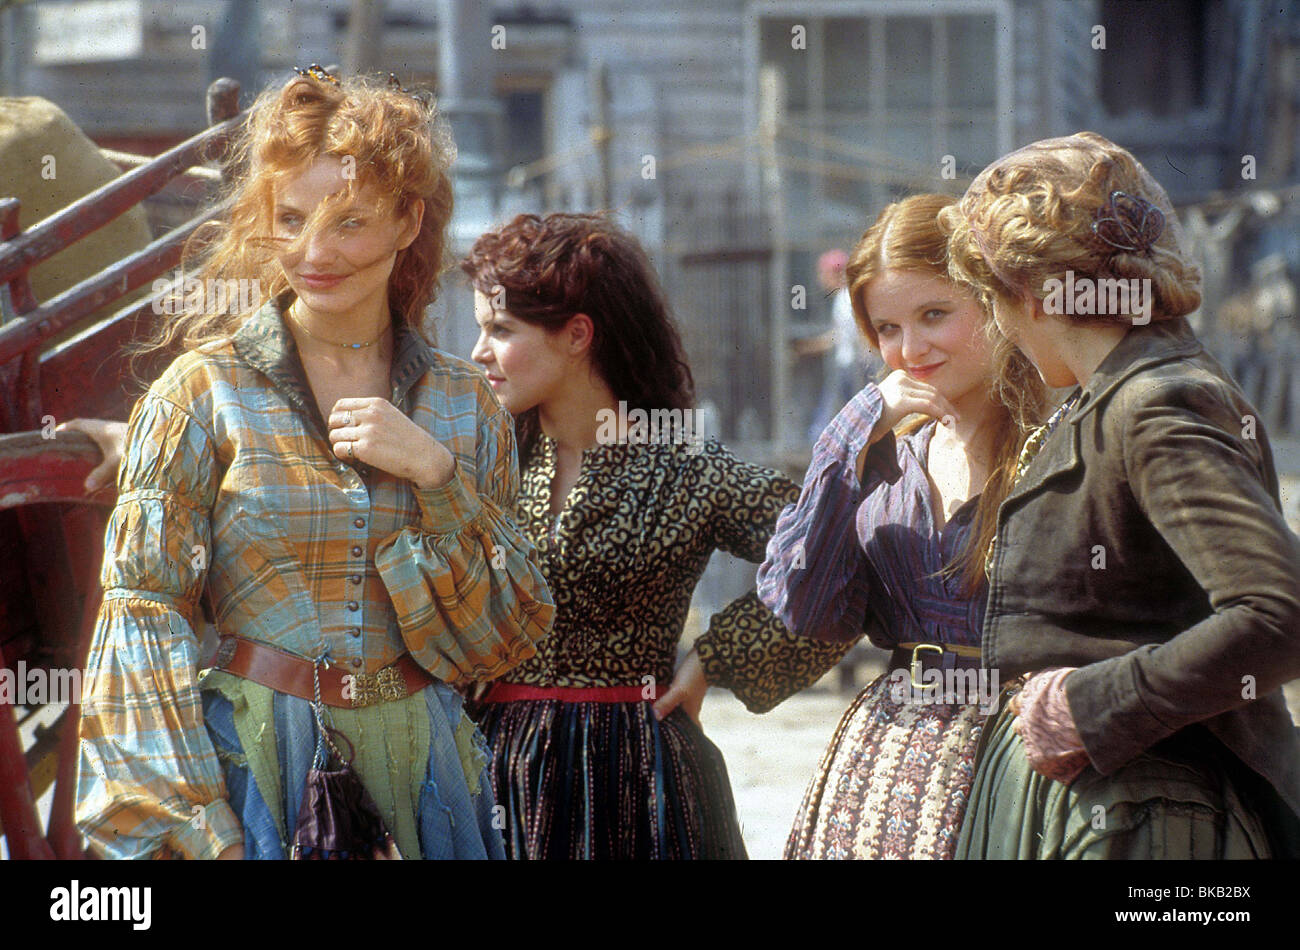 GANGS OF NEW YORK (2002) CAMERON DIAZ GONY 005 - Stock Image